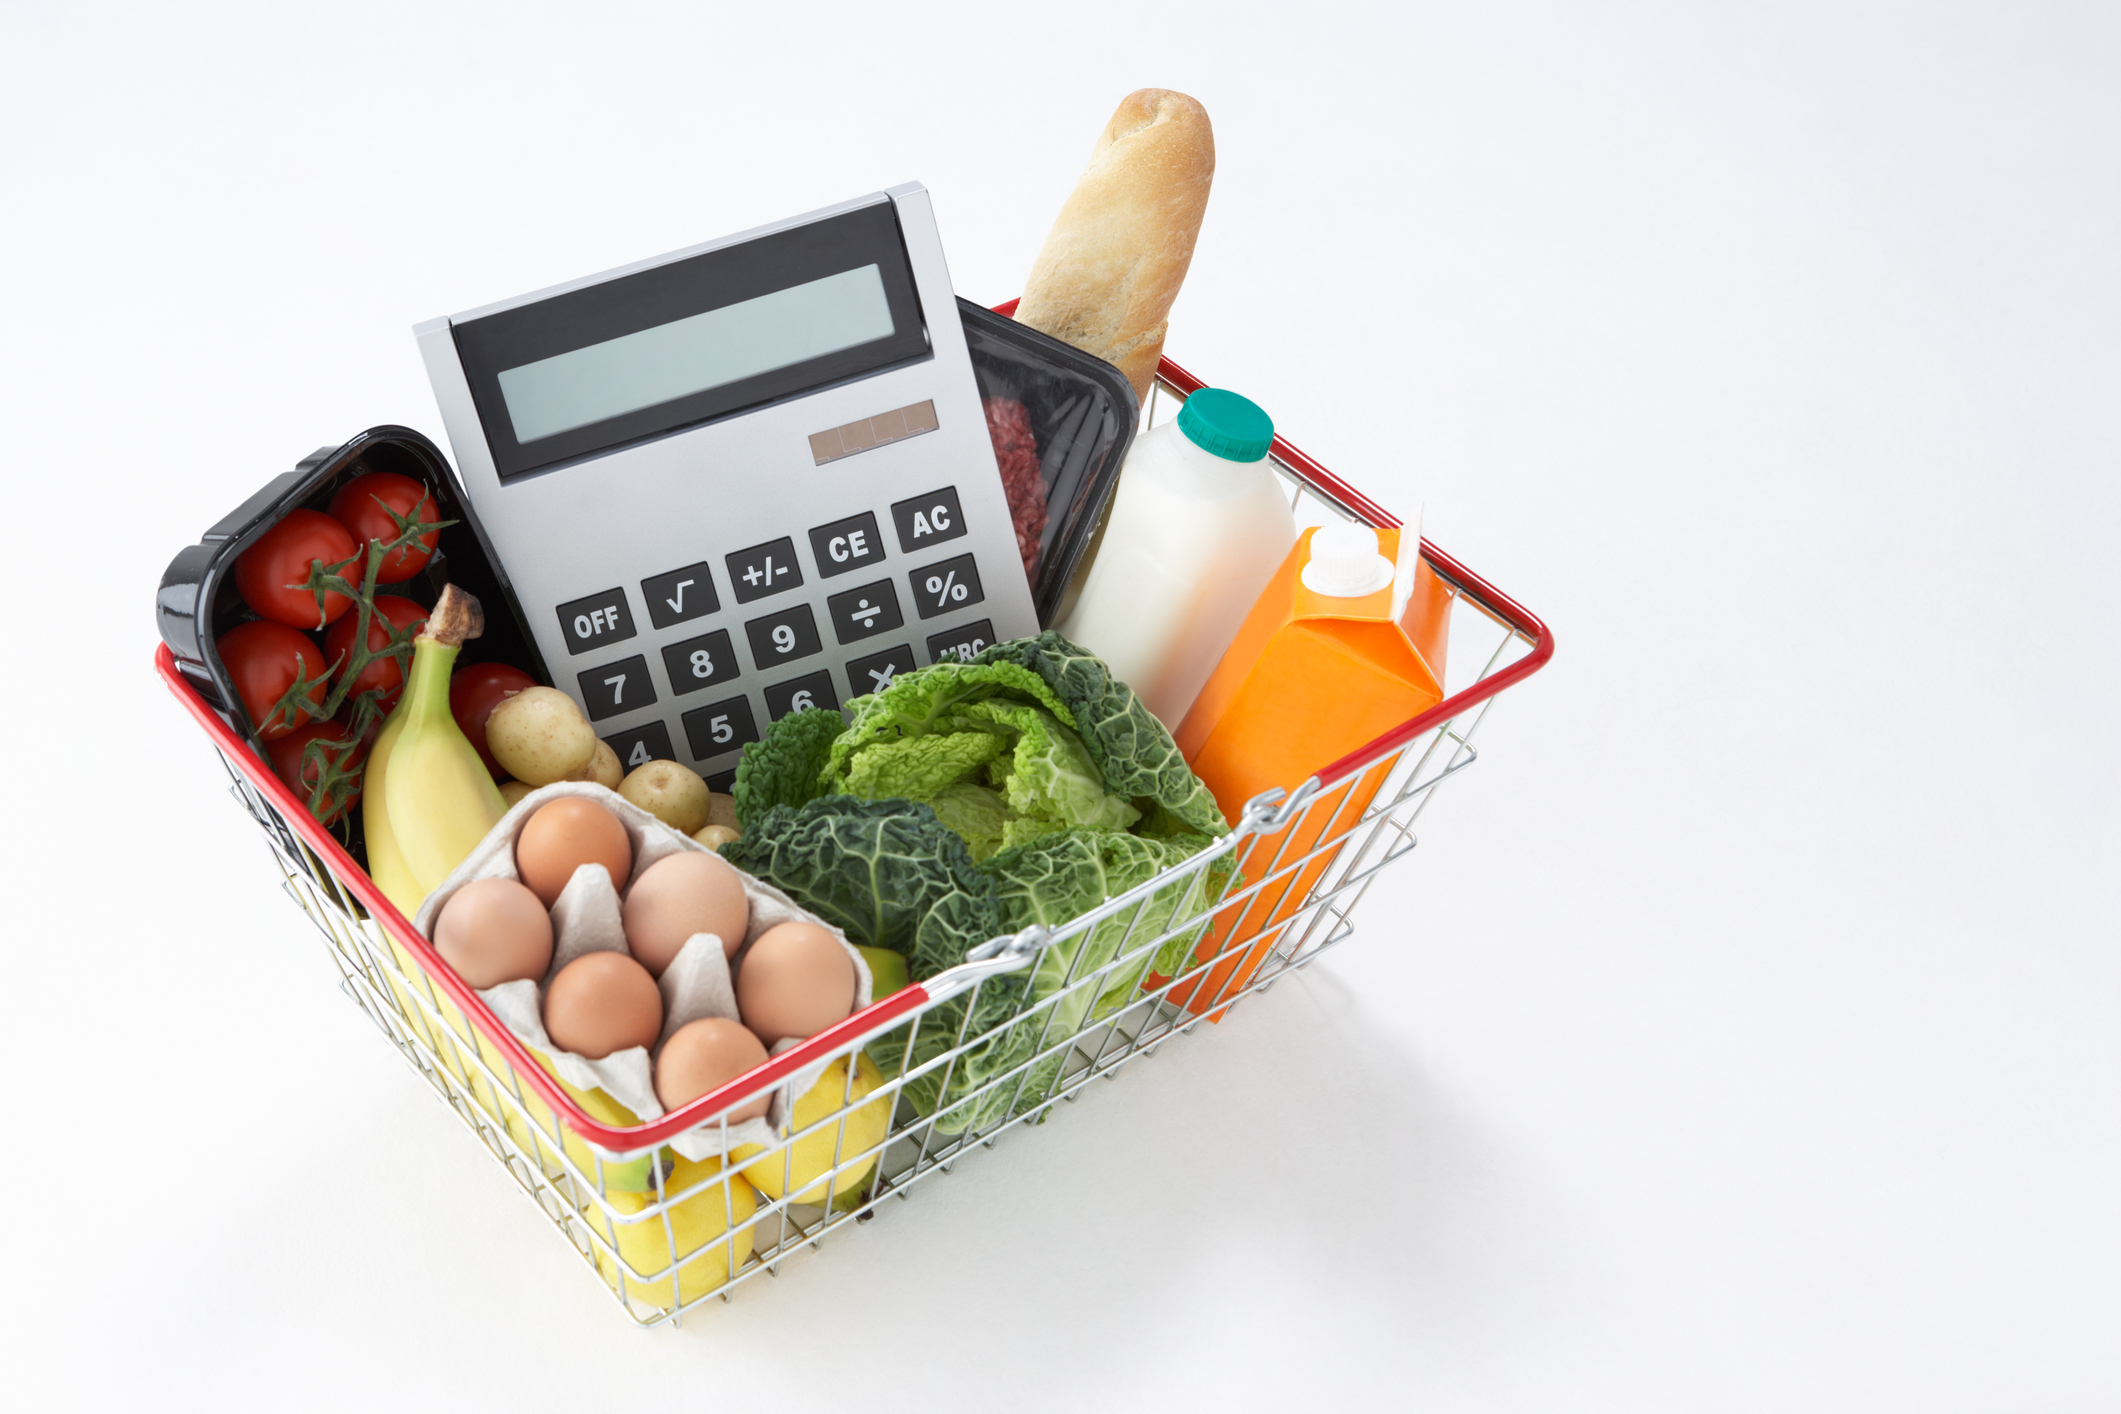 basket of groceries and calculator njbc